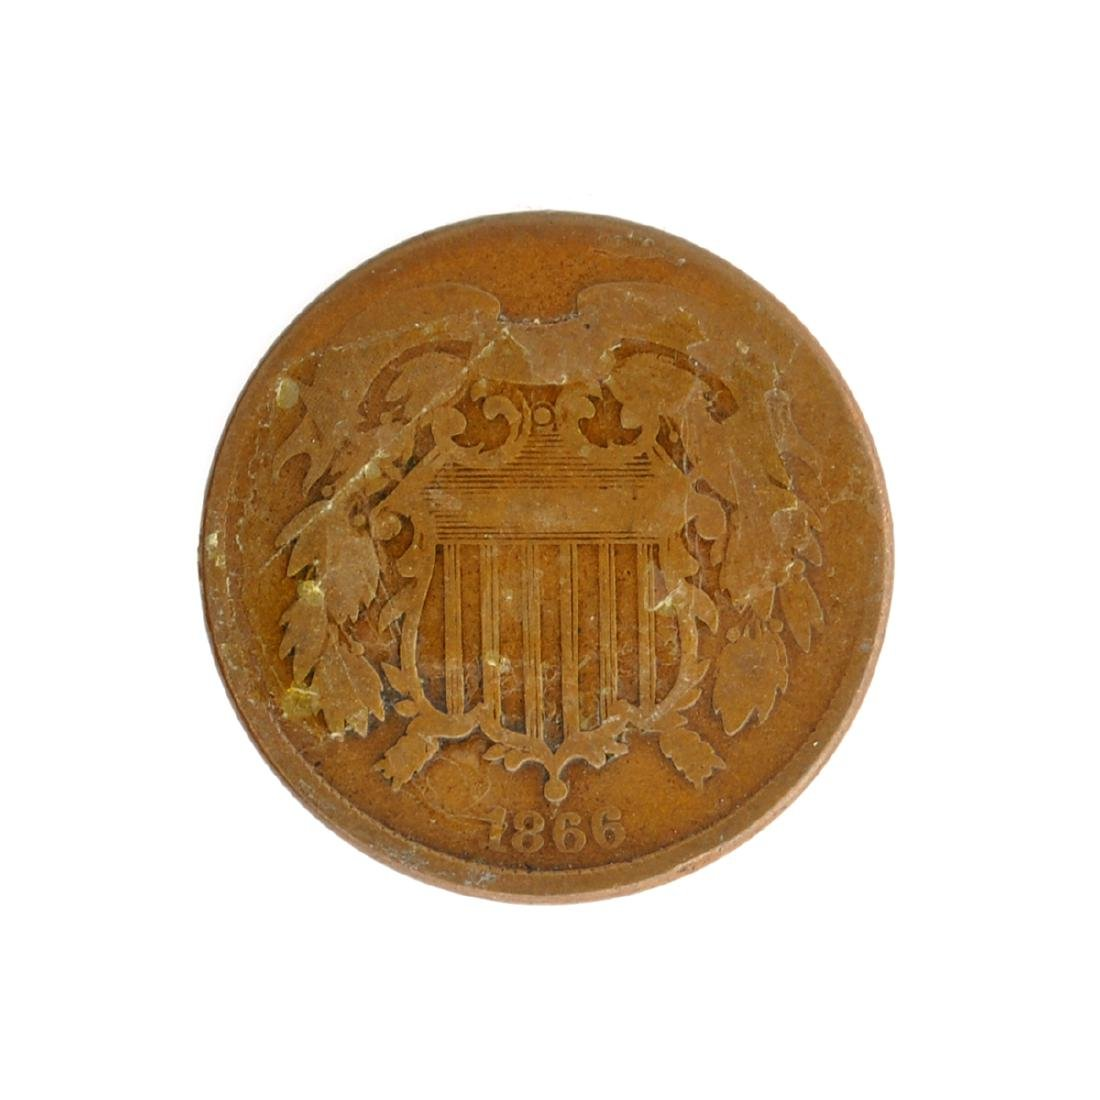 1866 Two-Cent Coin